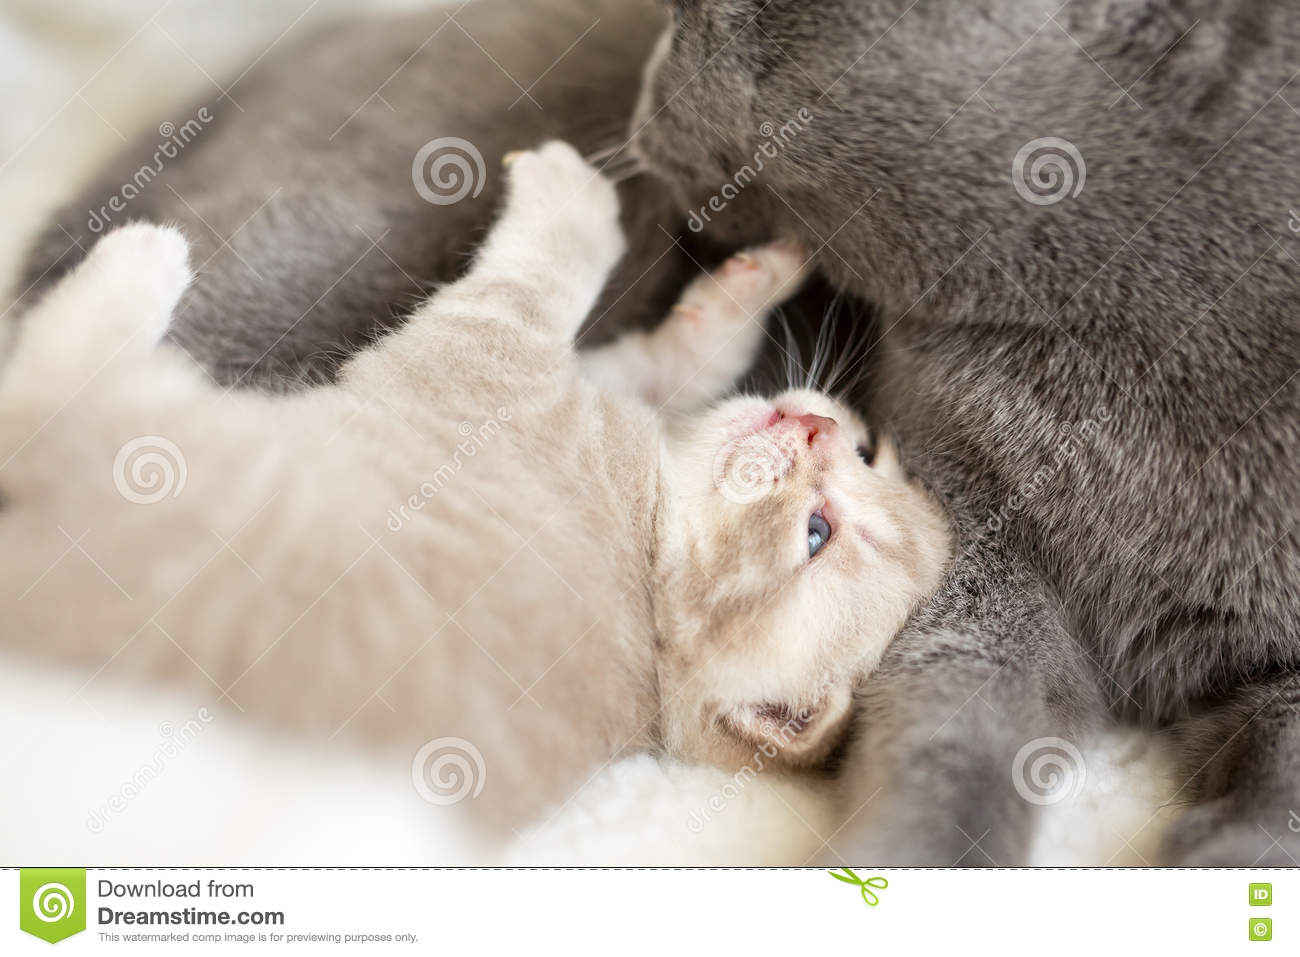 Cat and kitten lying and hugging together